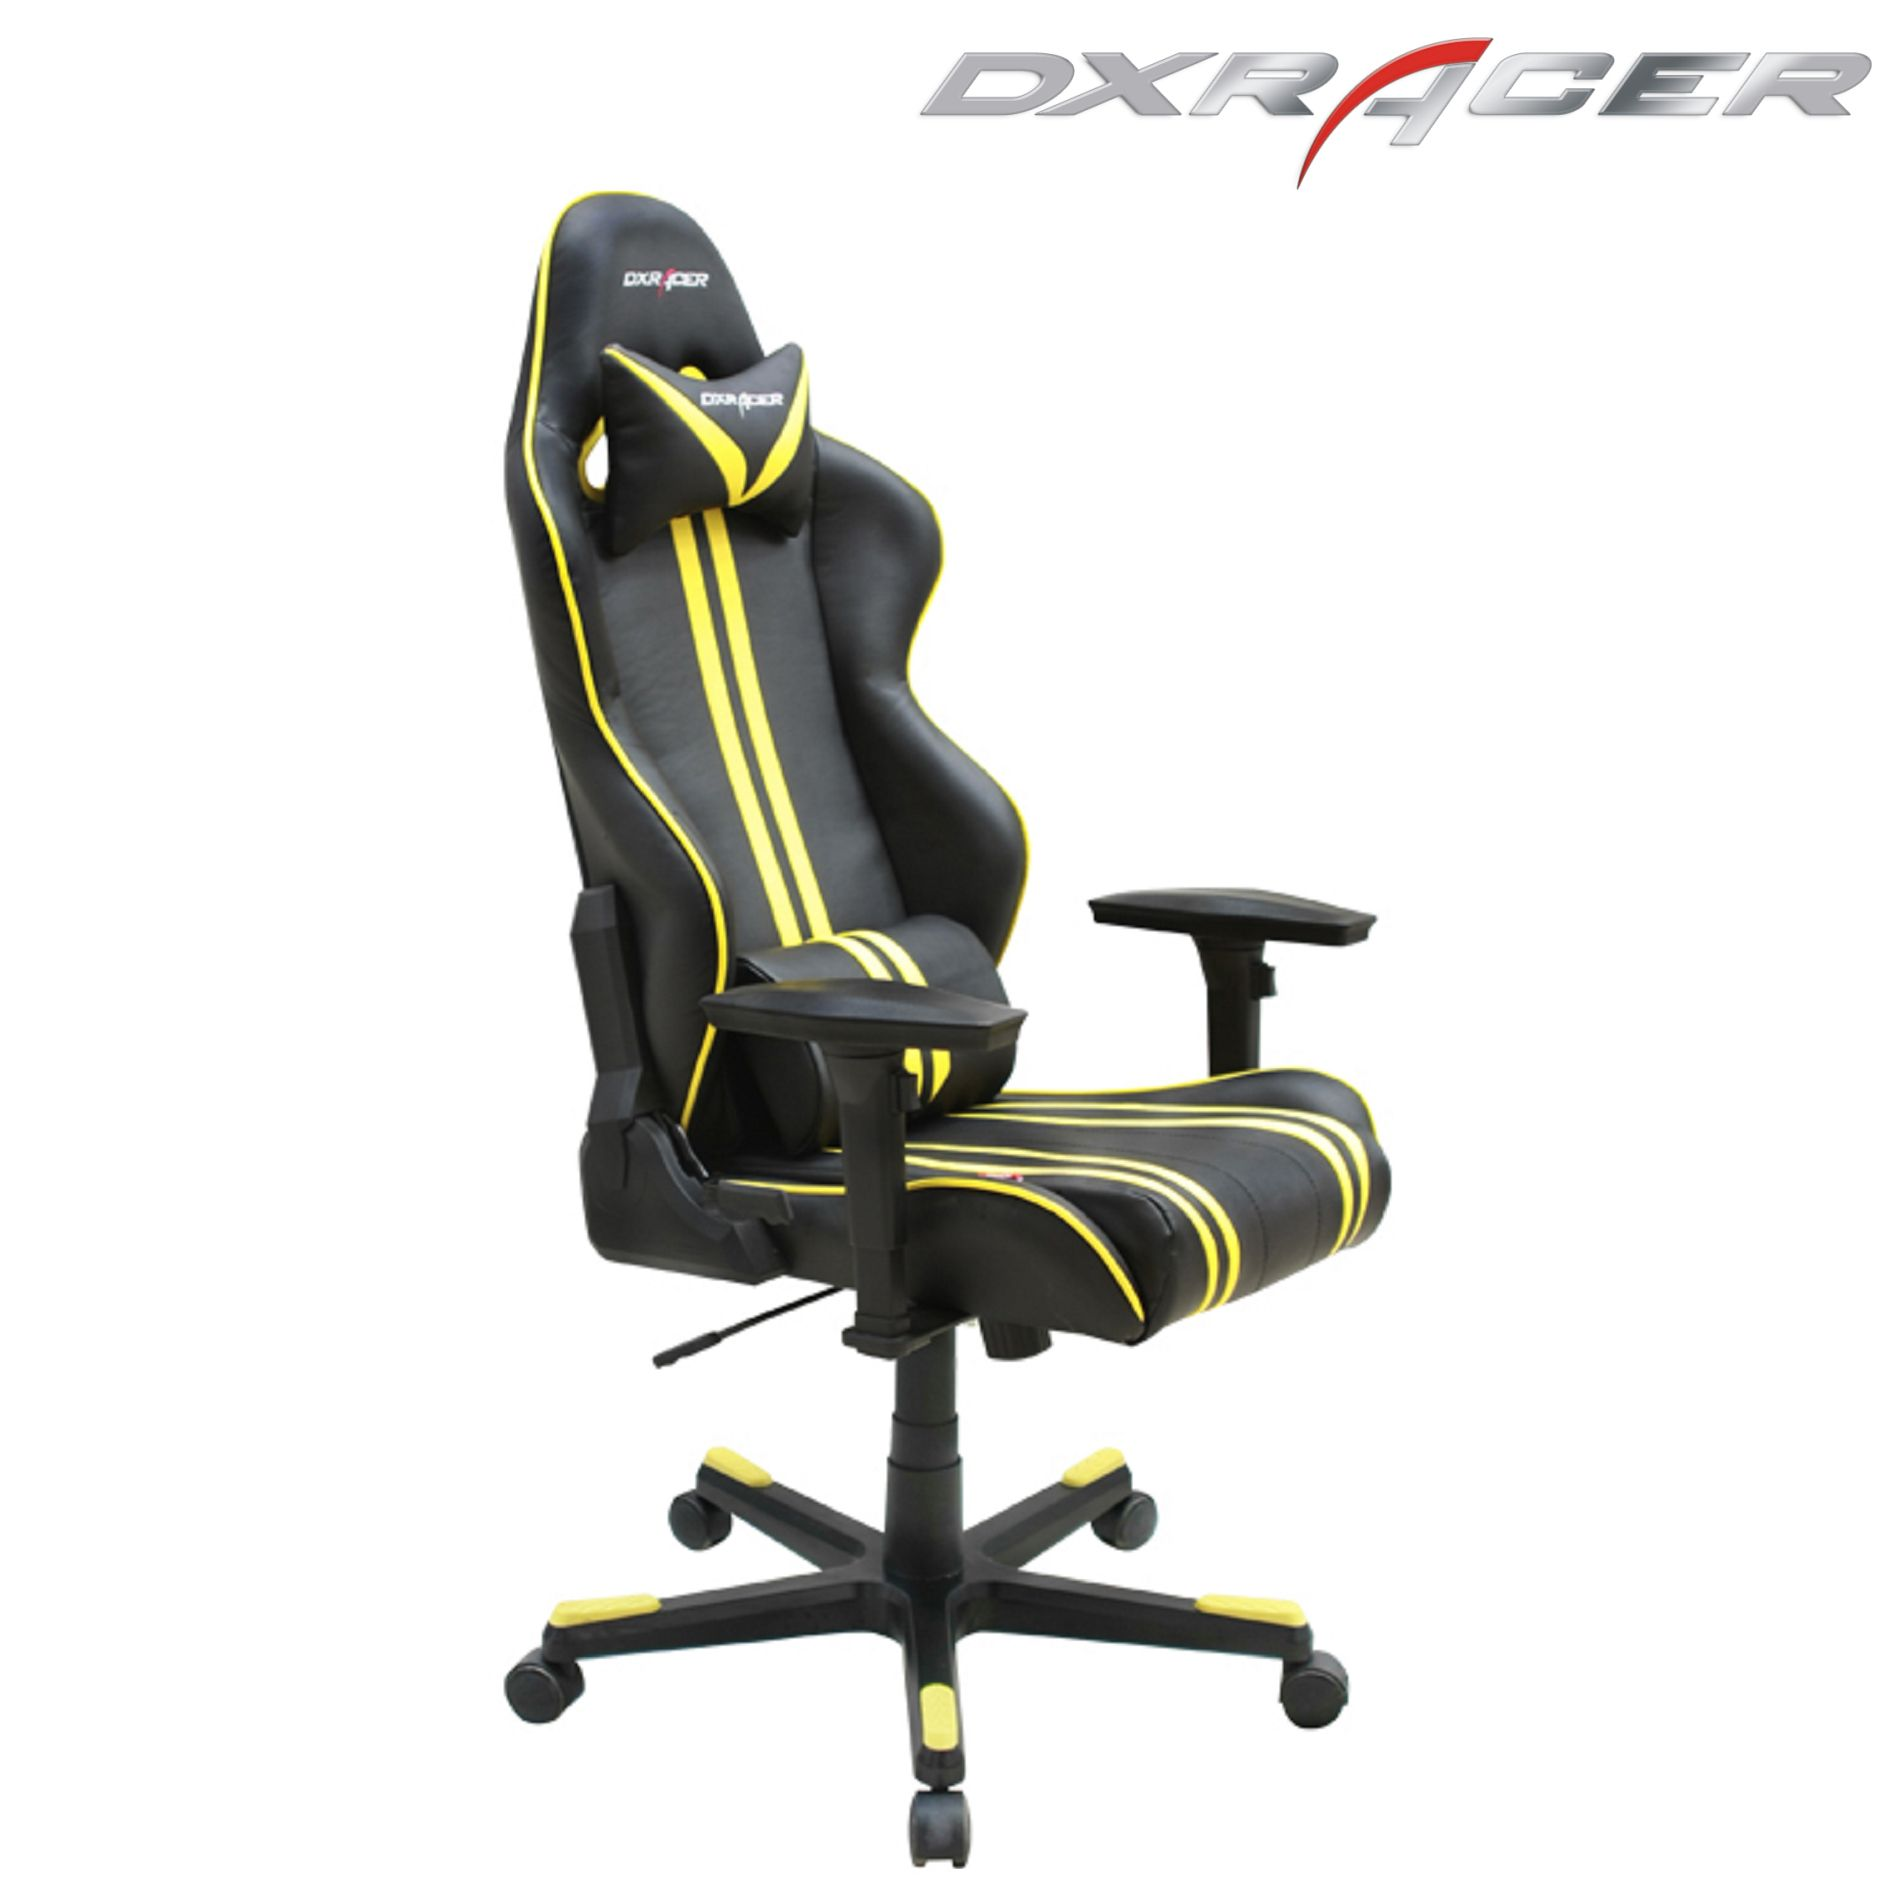 Dxracer gaming race chair RF9NY black with yellow onlinegames